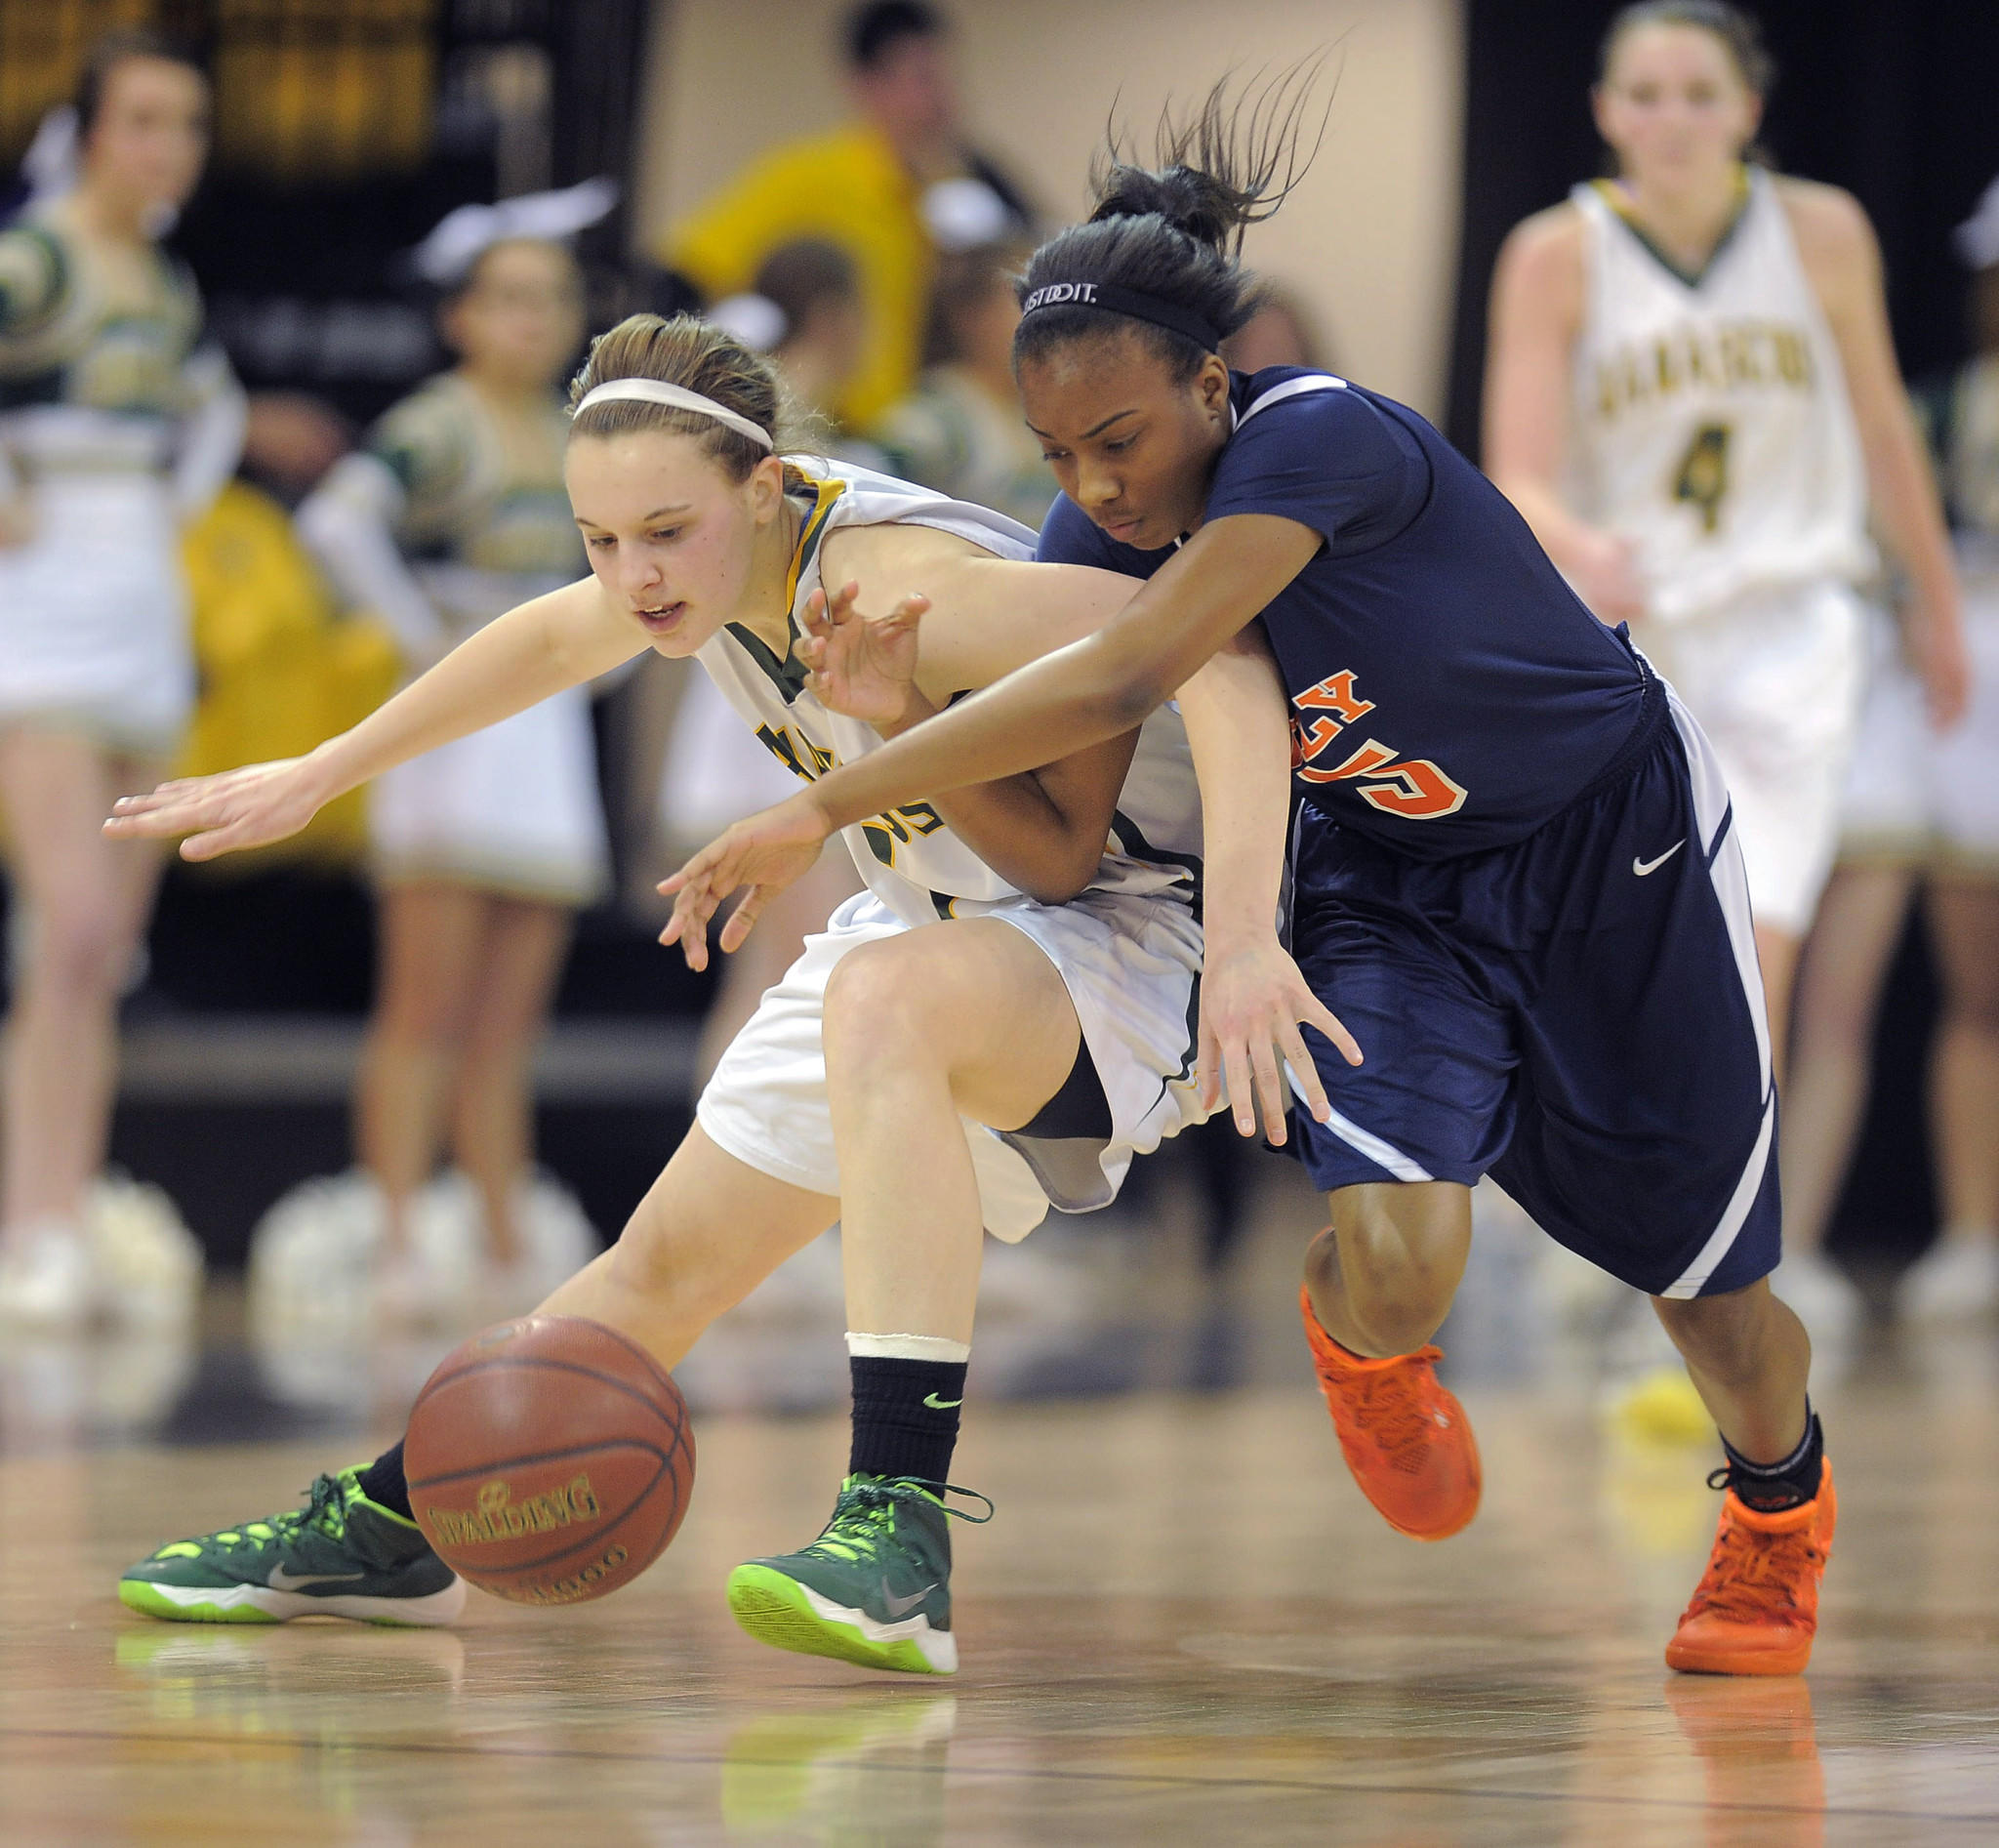 Damascus' Jenna Kauffman (1) and Poly's Khepera Stokes (5) chase after a loose ball.